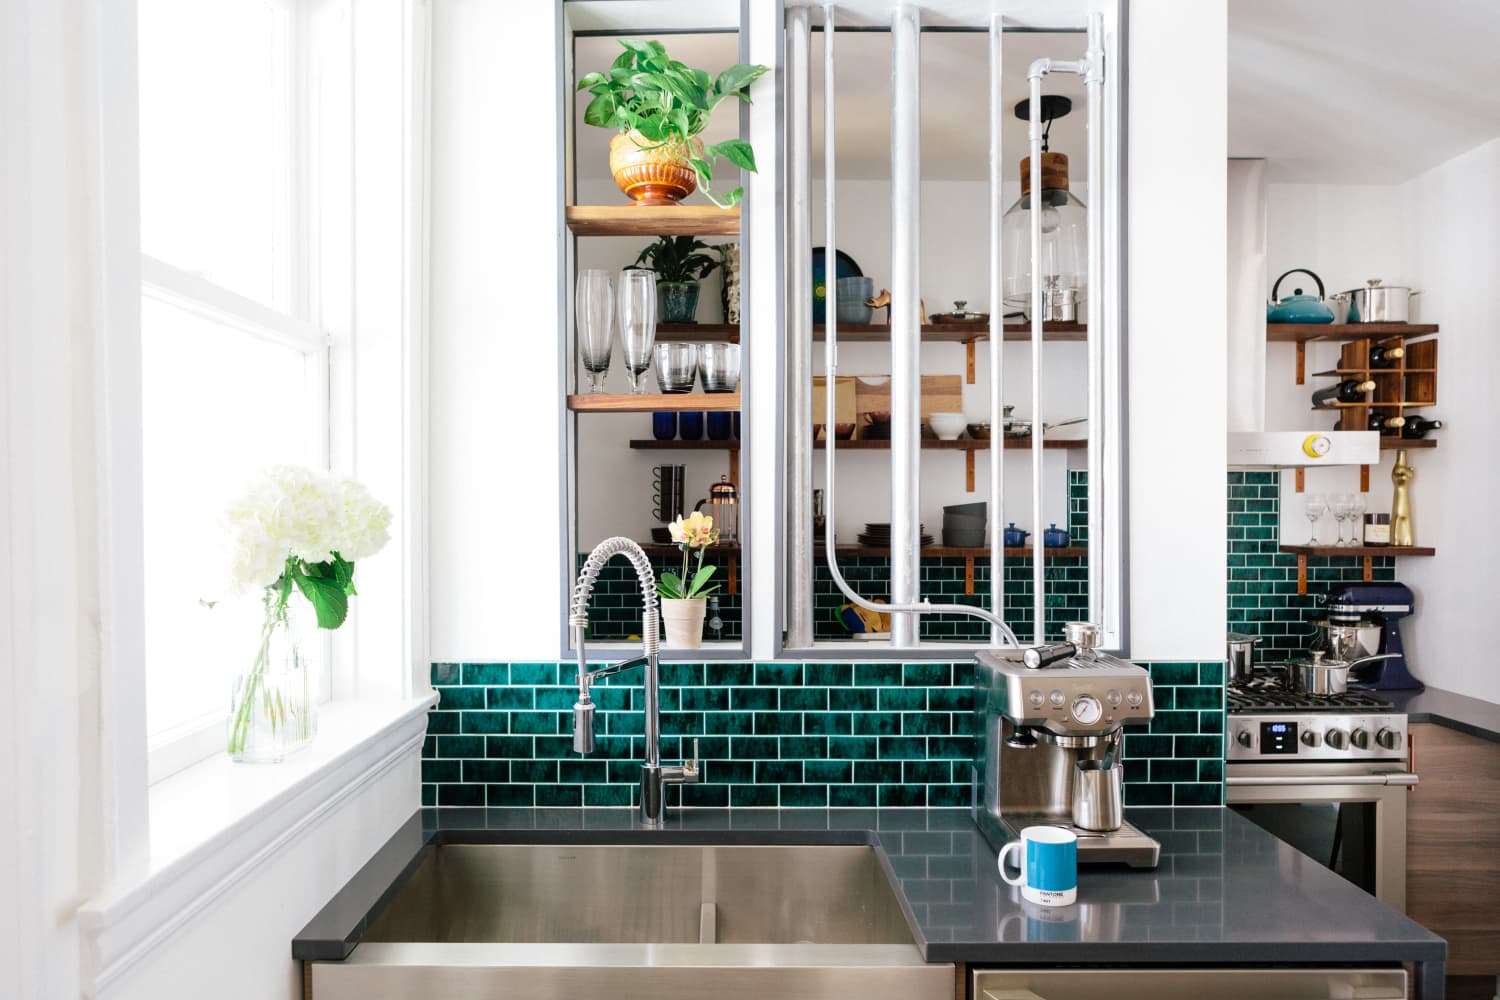 This Crackle Glaze Tile Trend is Taking Over the Kitchen and Bath